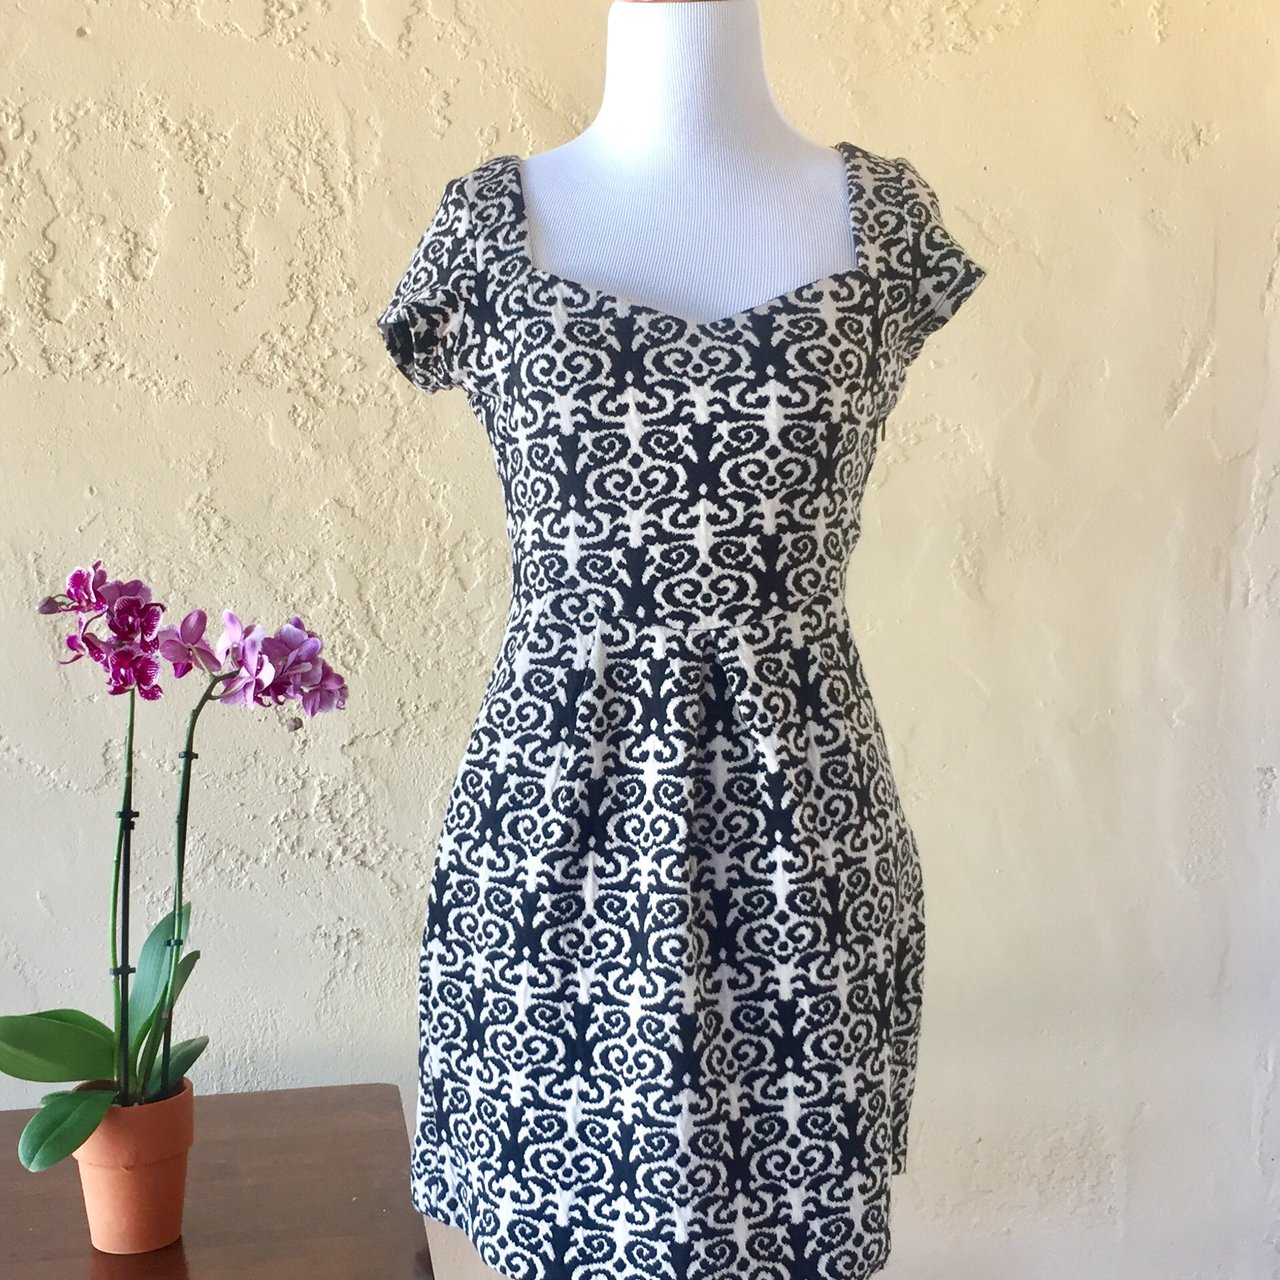 cbabe08b320e9 anthropologie lightly loved dress from Deletta. Size Petite - Depop